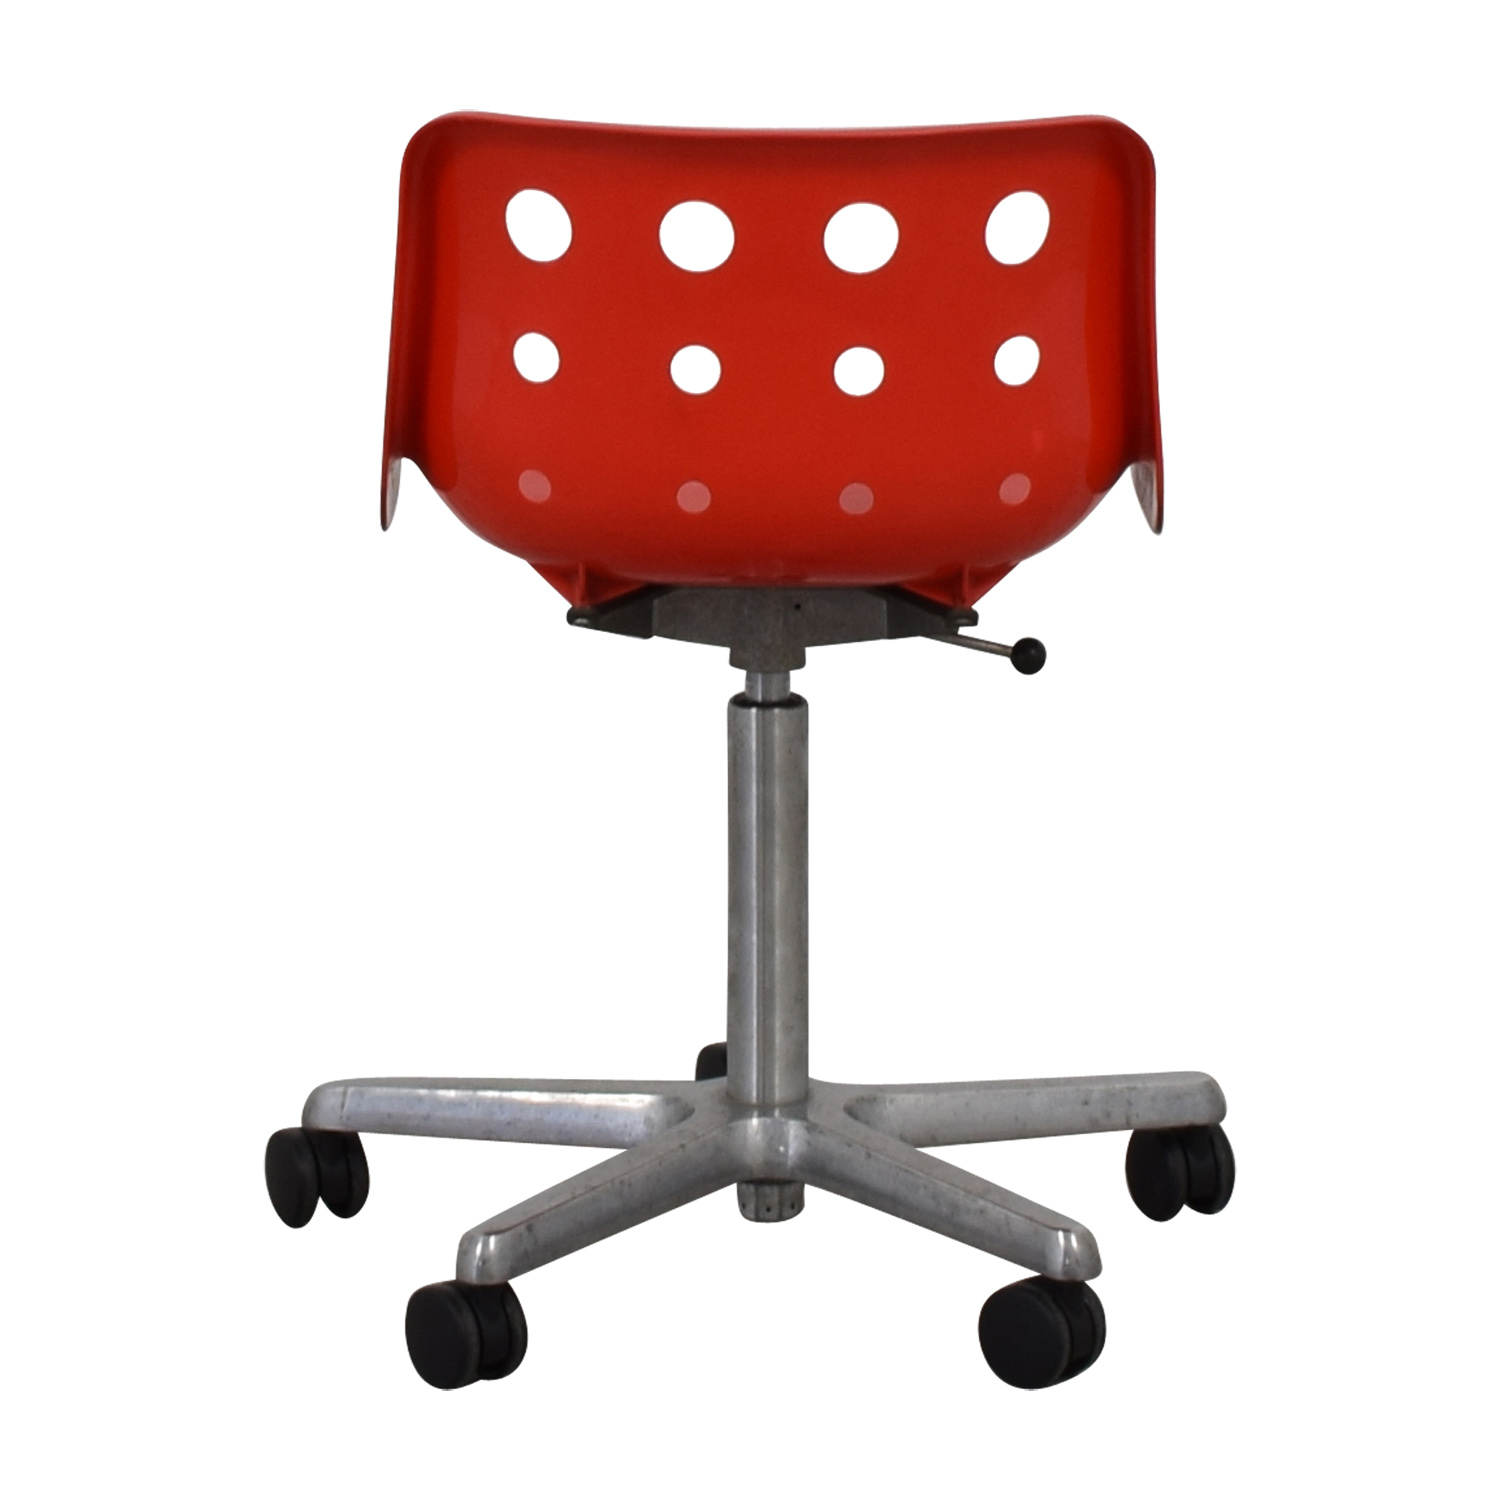 Robin Day 1973 Polo 5 Star Red Chair on Castors / Chairs